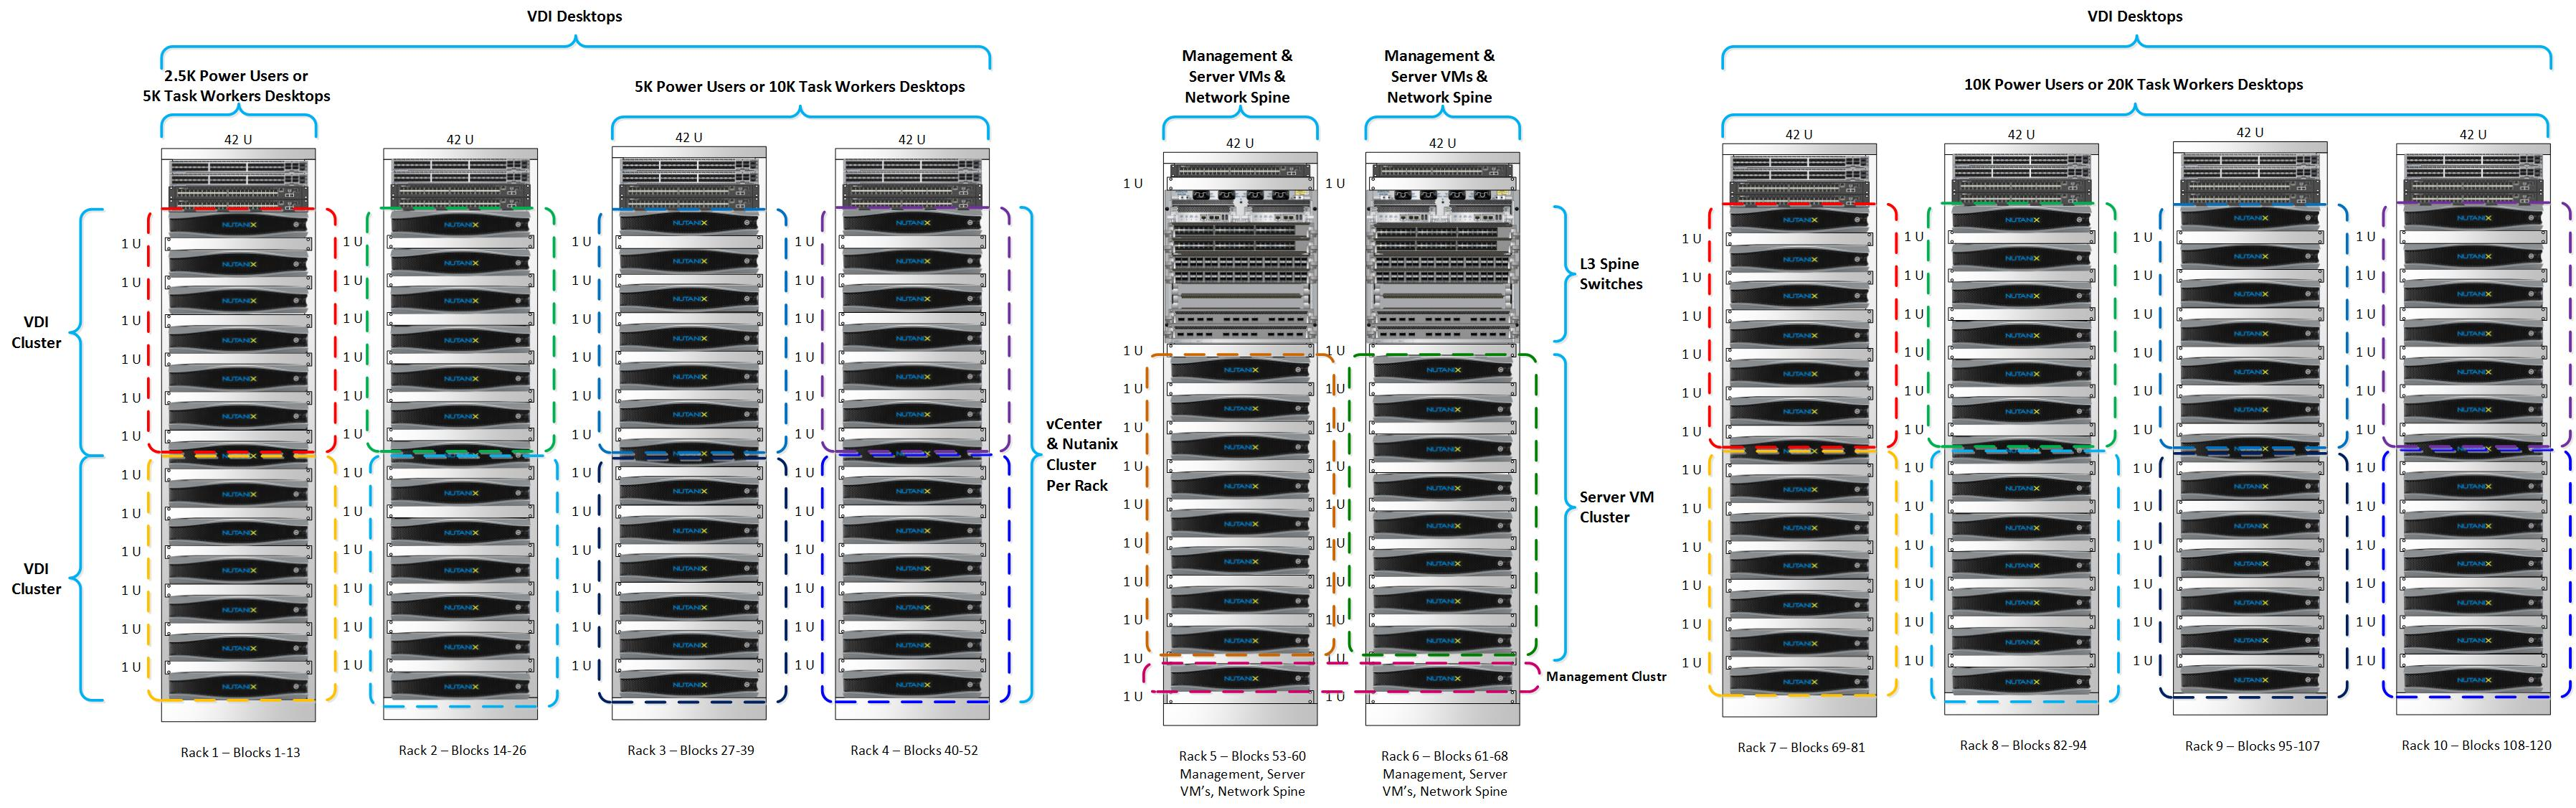 Nutanix vdi example architecture for 20k to 200k power for Design reference sites